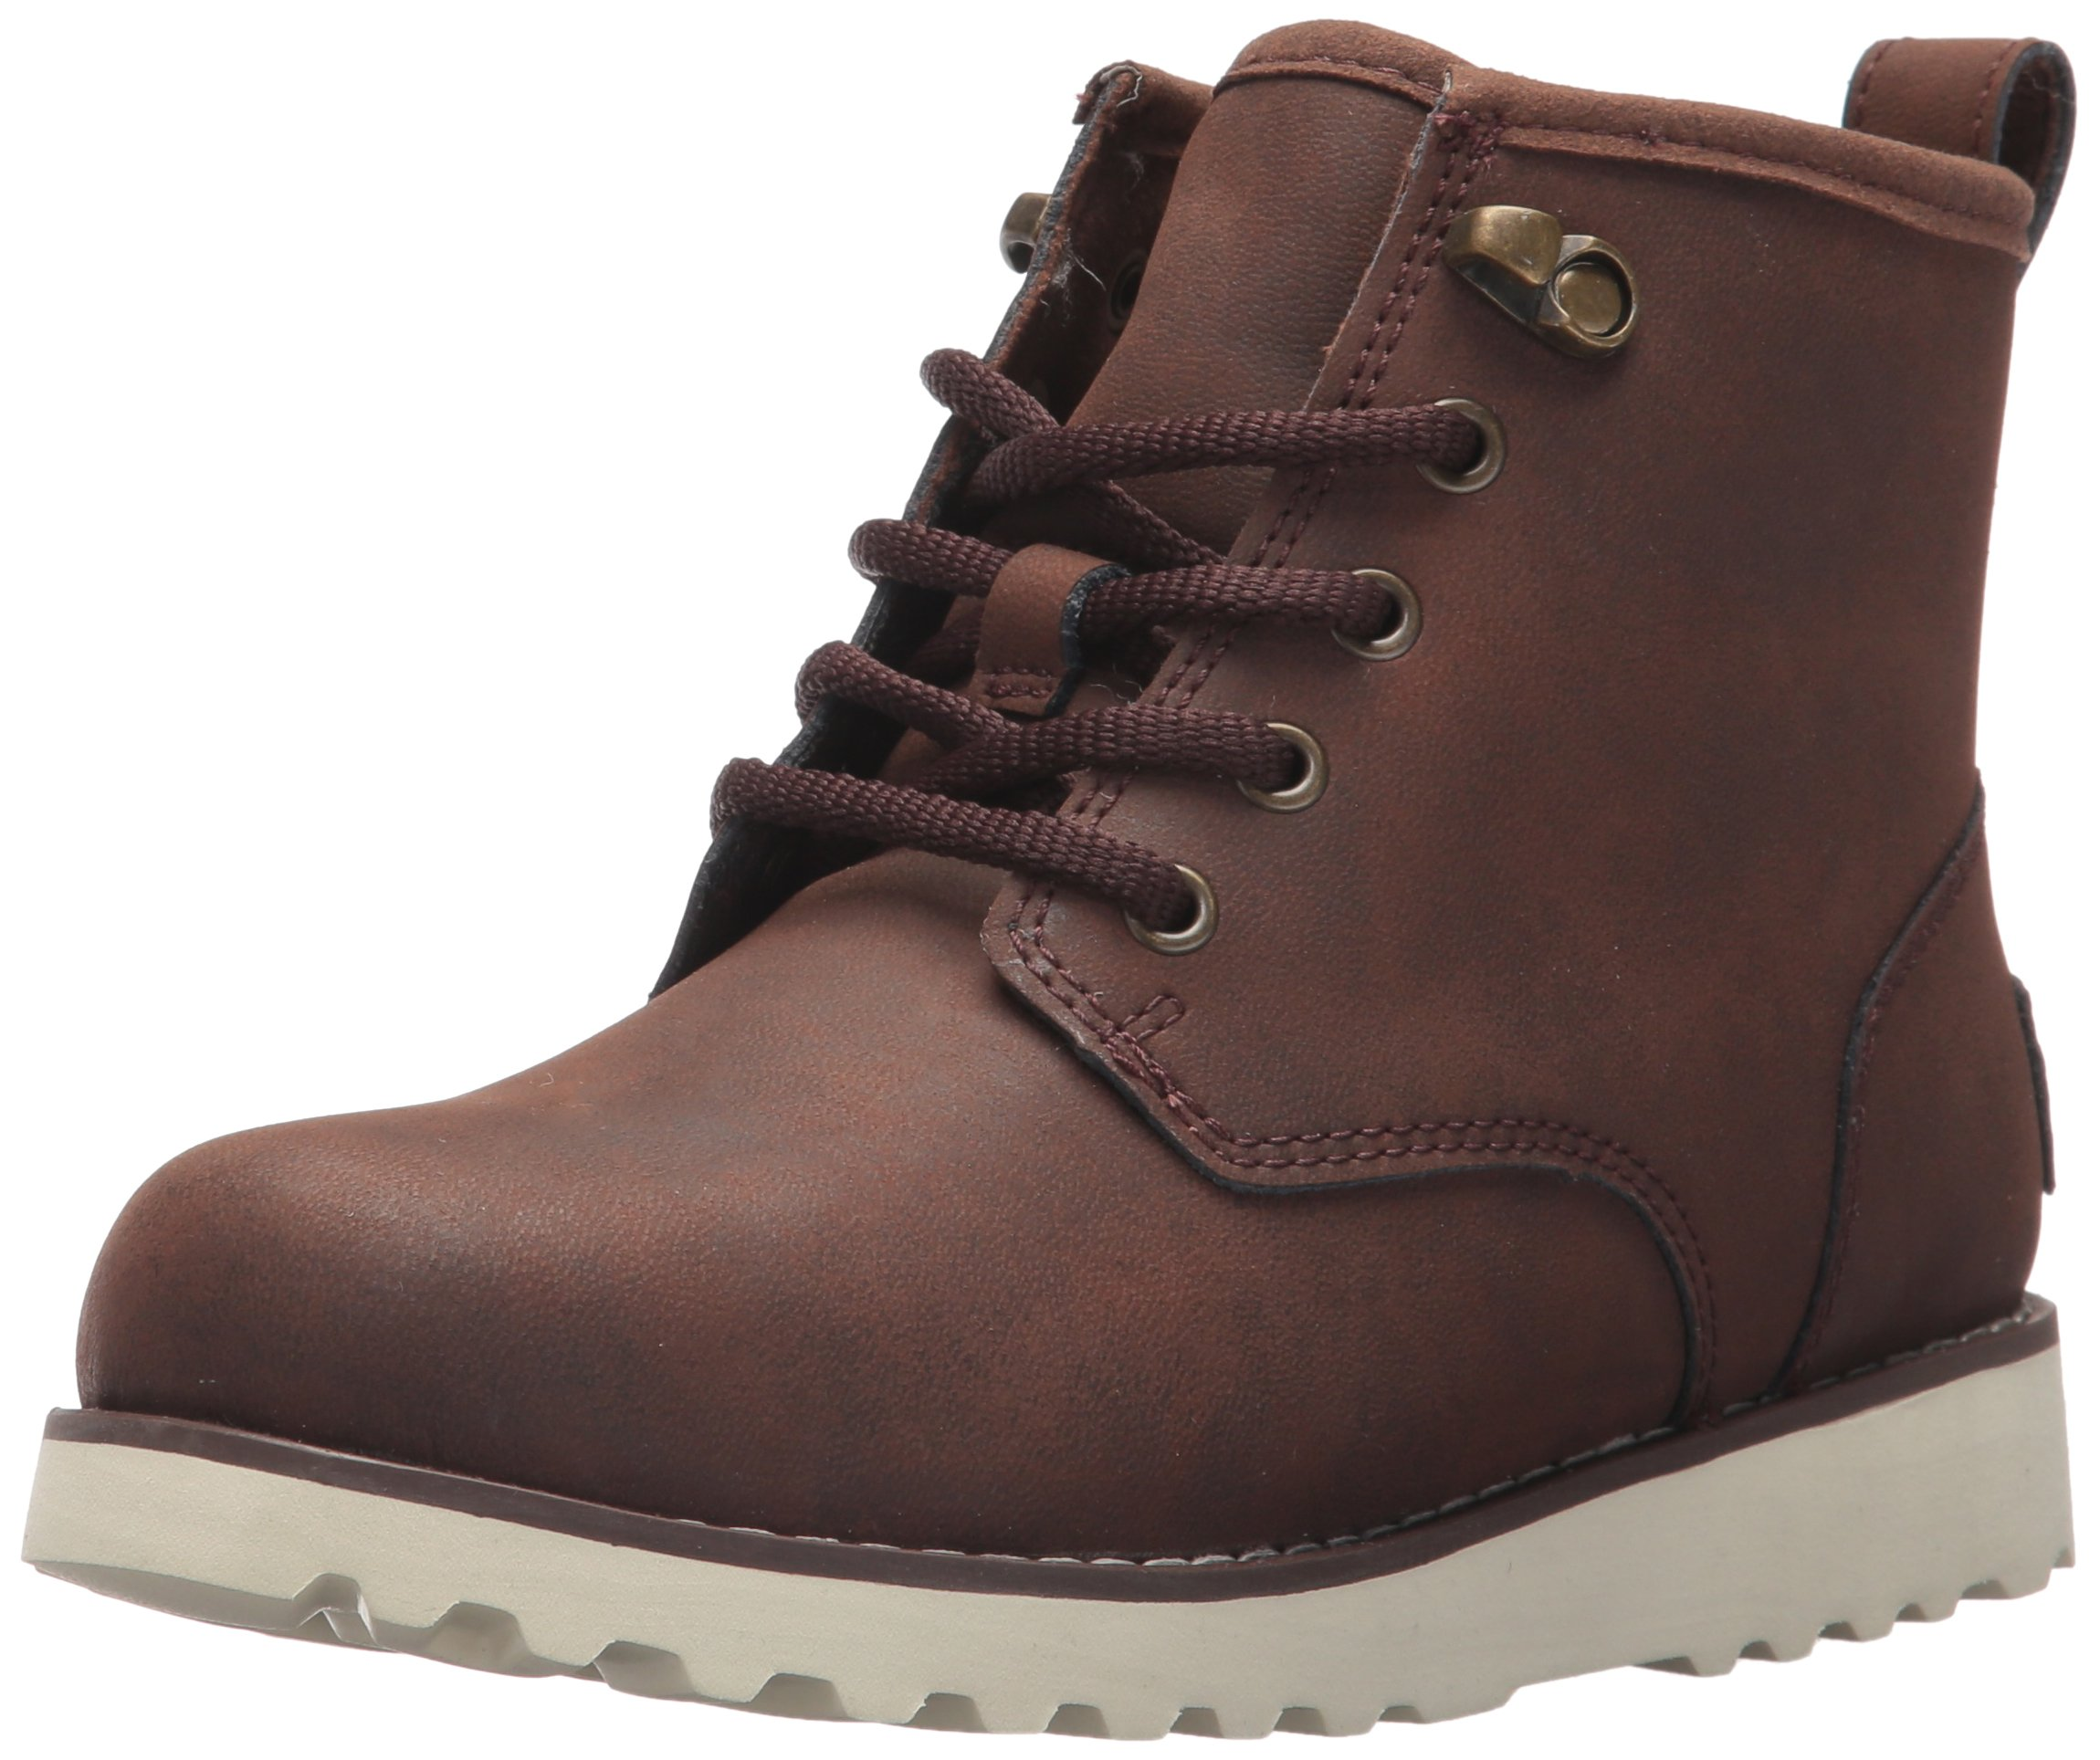 UGG Boys K Maple II Lace-up Boot, Mahogany, 10 M US Toddler